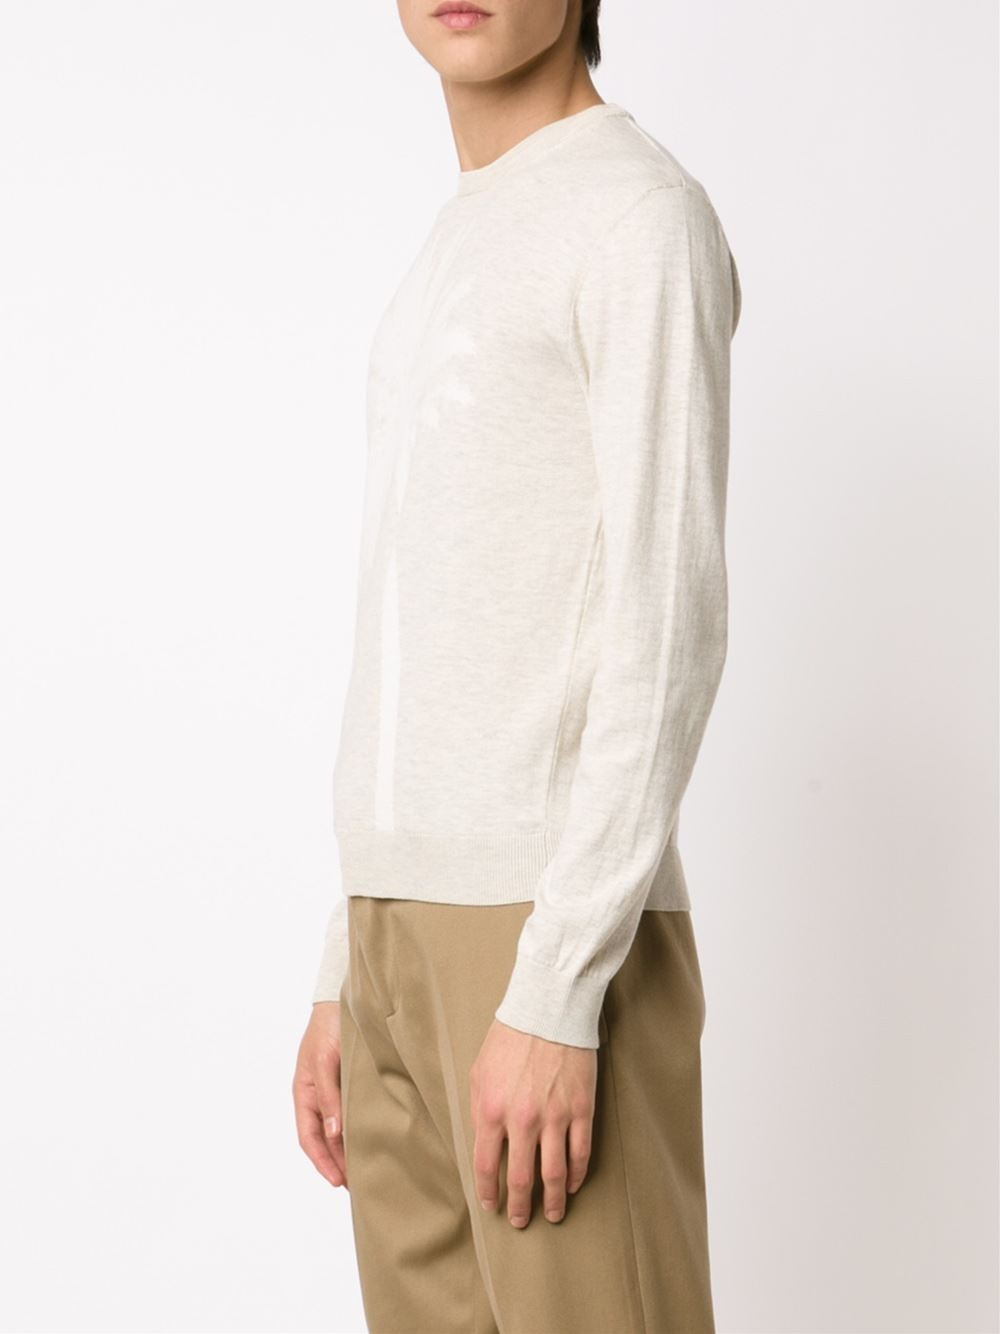 calvin klein tonal palm tree sweater in white for men lyst. Black Bedroom Furniture Sets. Home Design Ideas